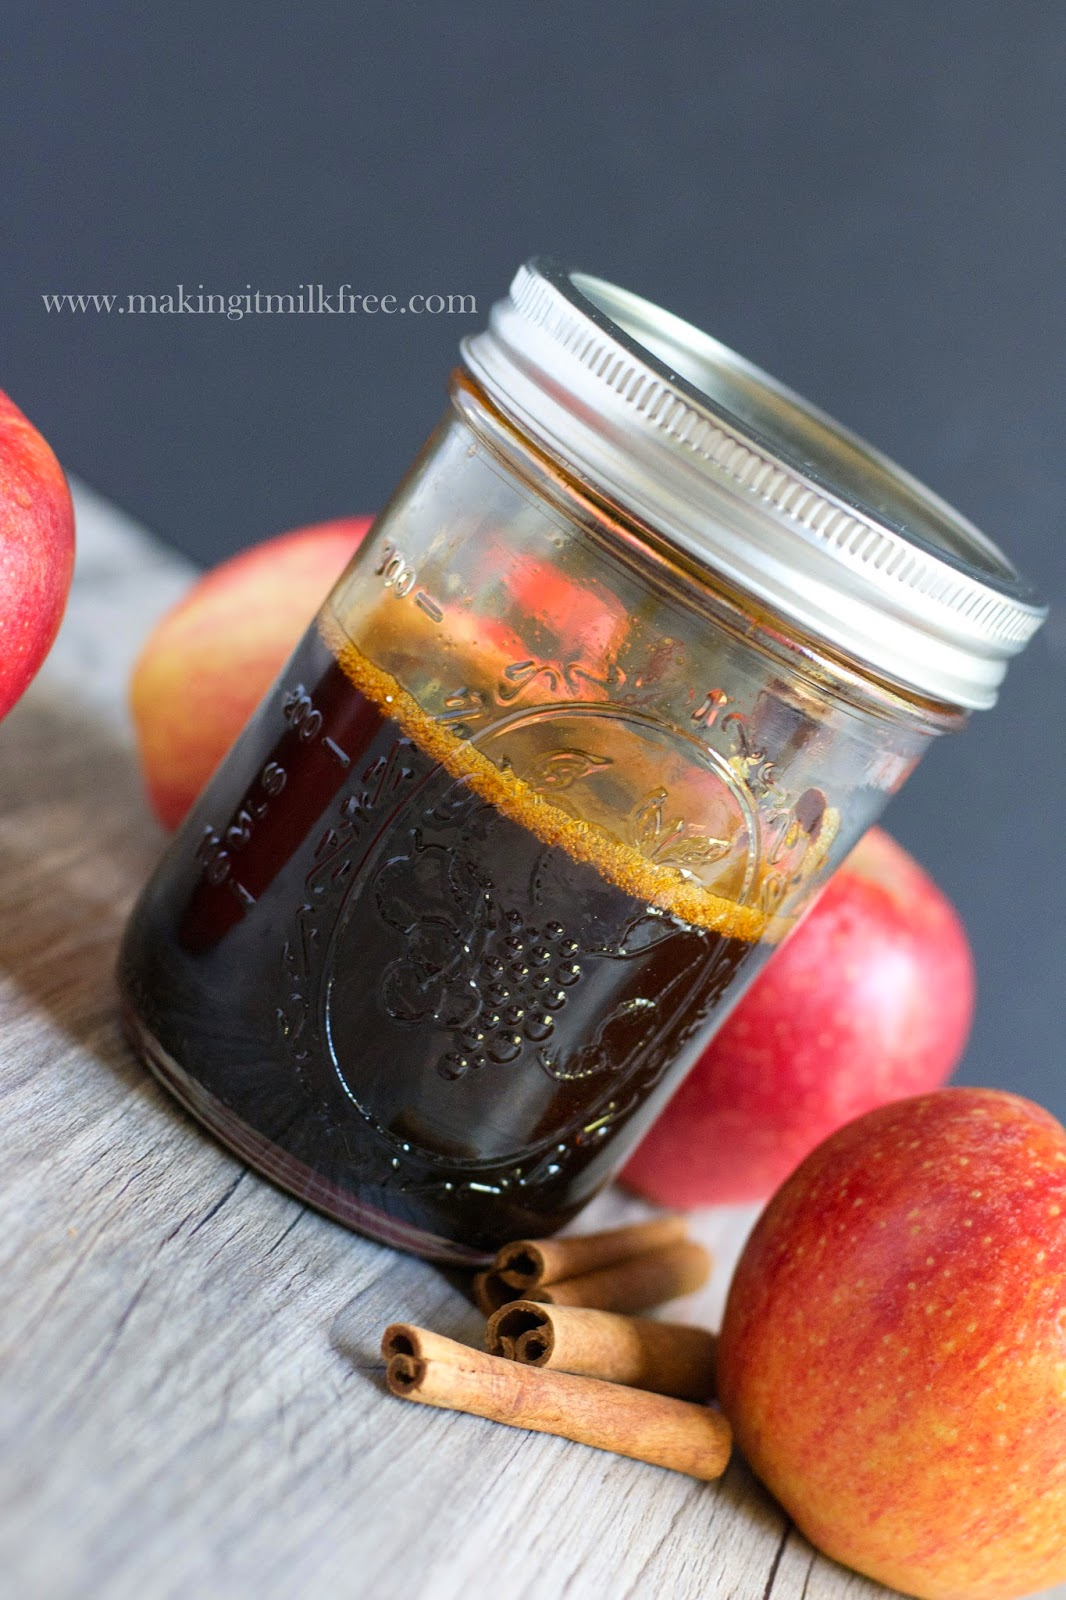 #dairyfree #glutenfree #apples #fallrecipes